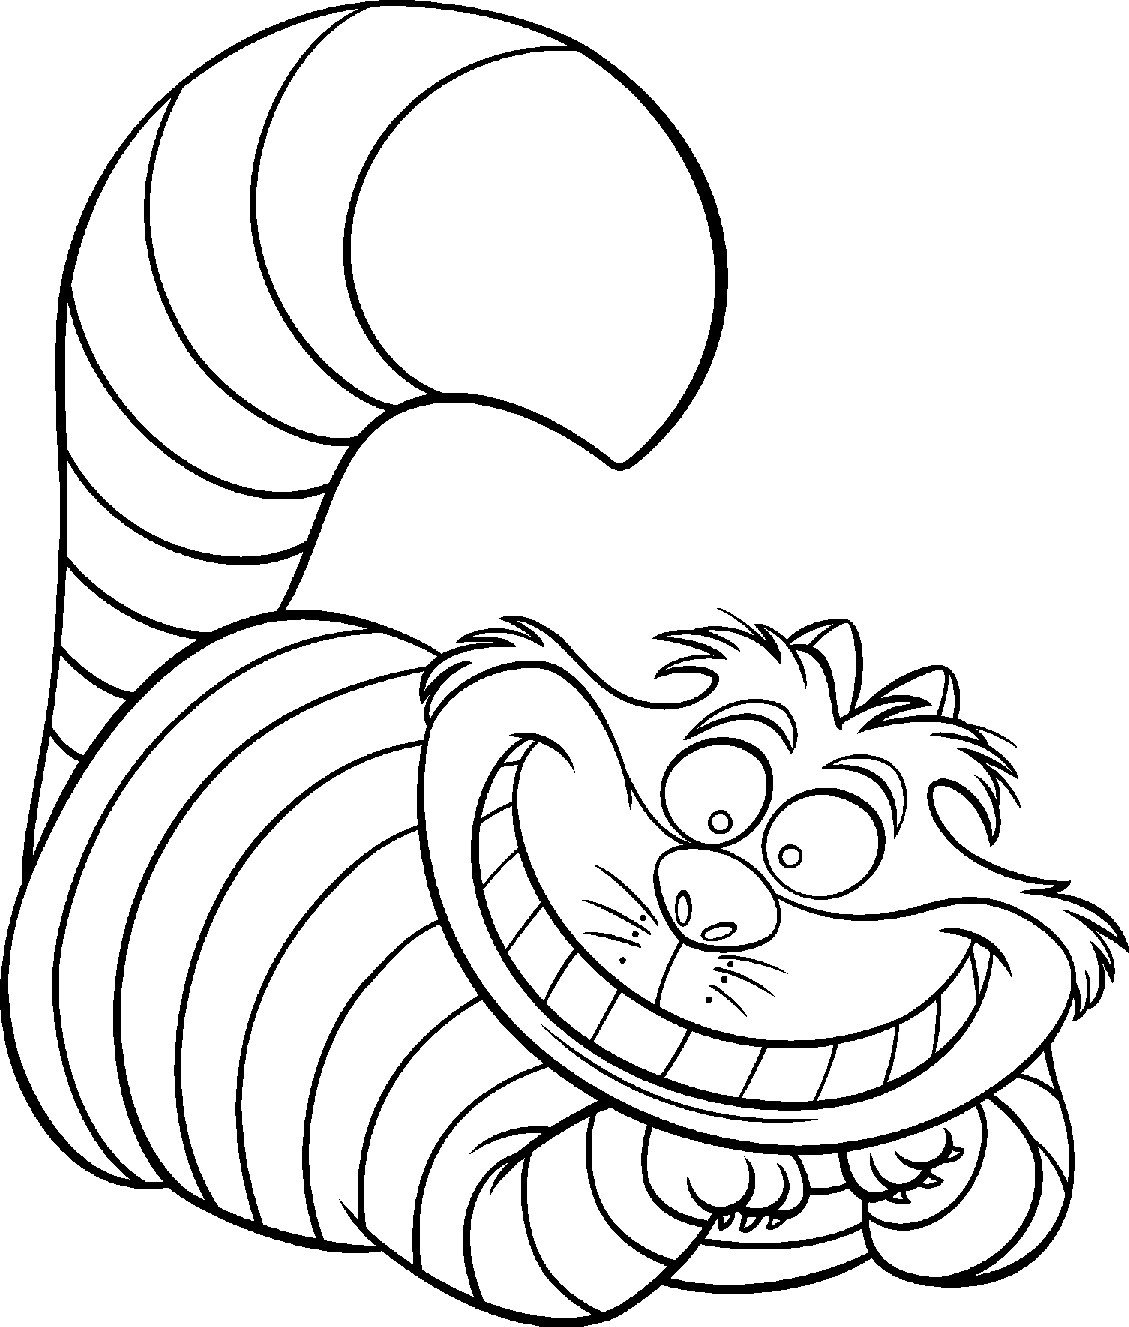 Amazing Disney Printable Coloring Pages 26 About Remodel Coloring